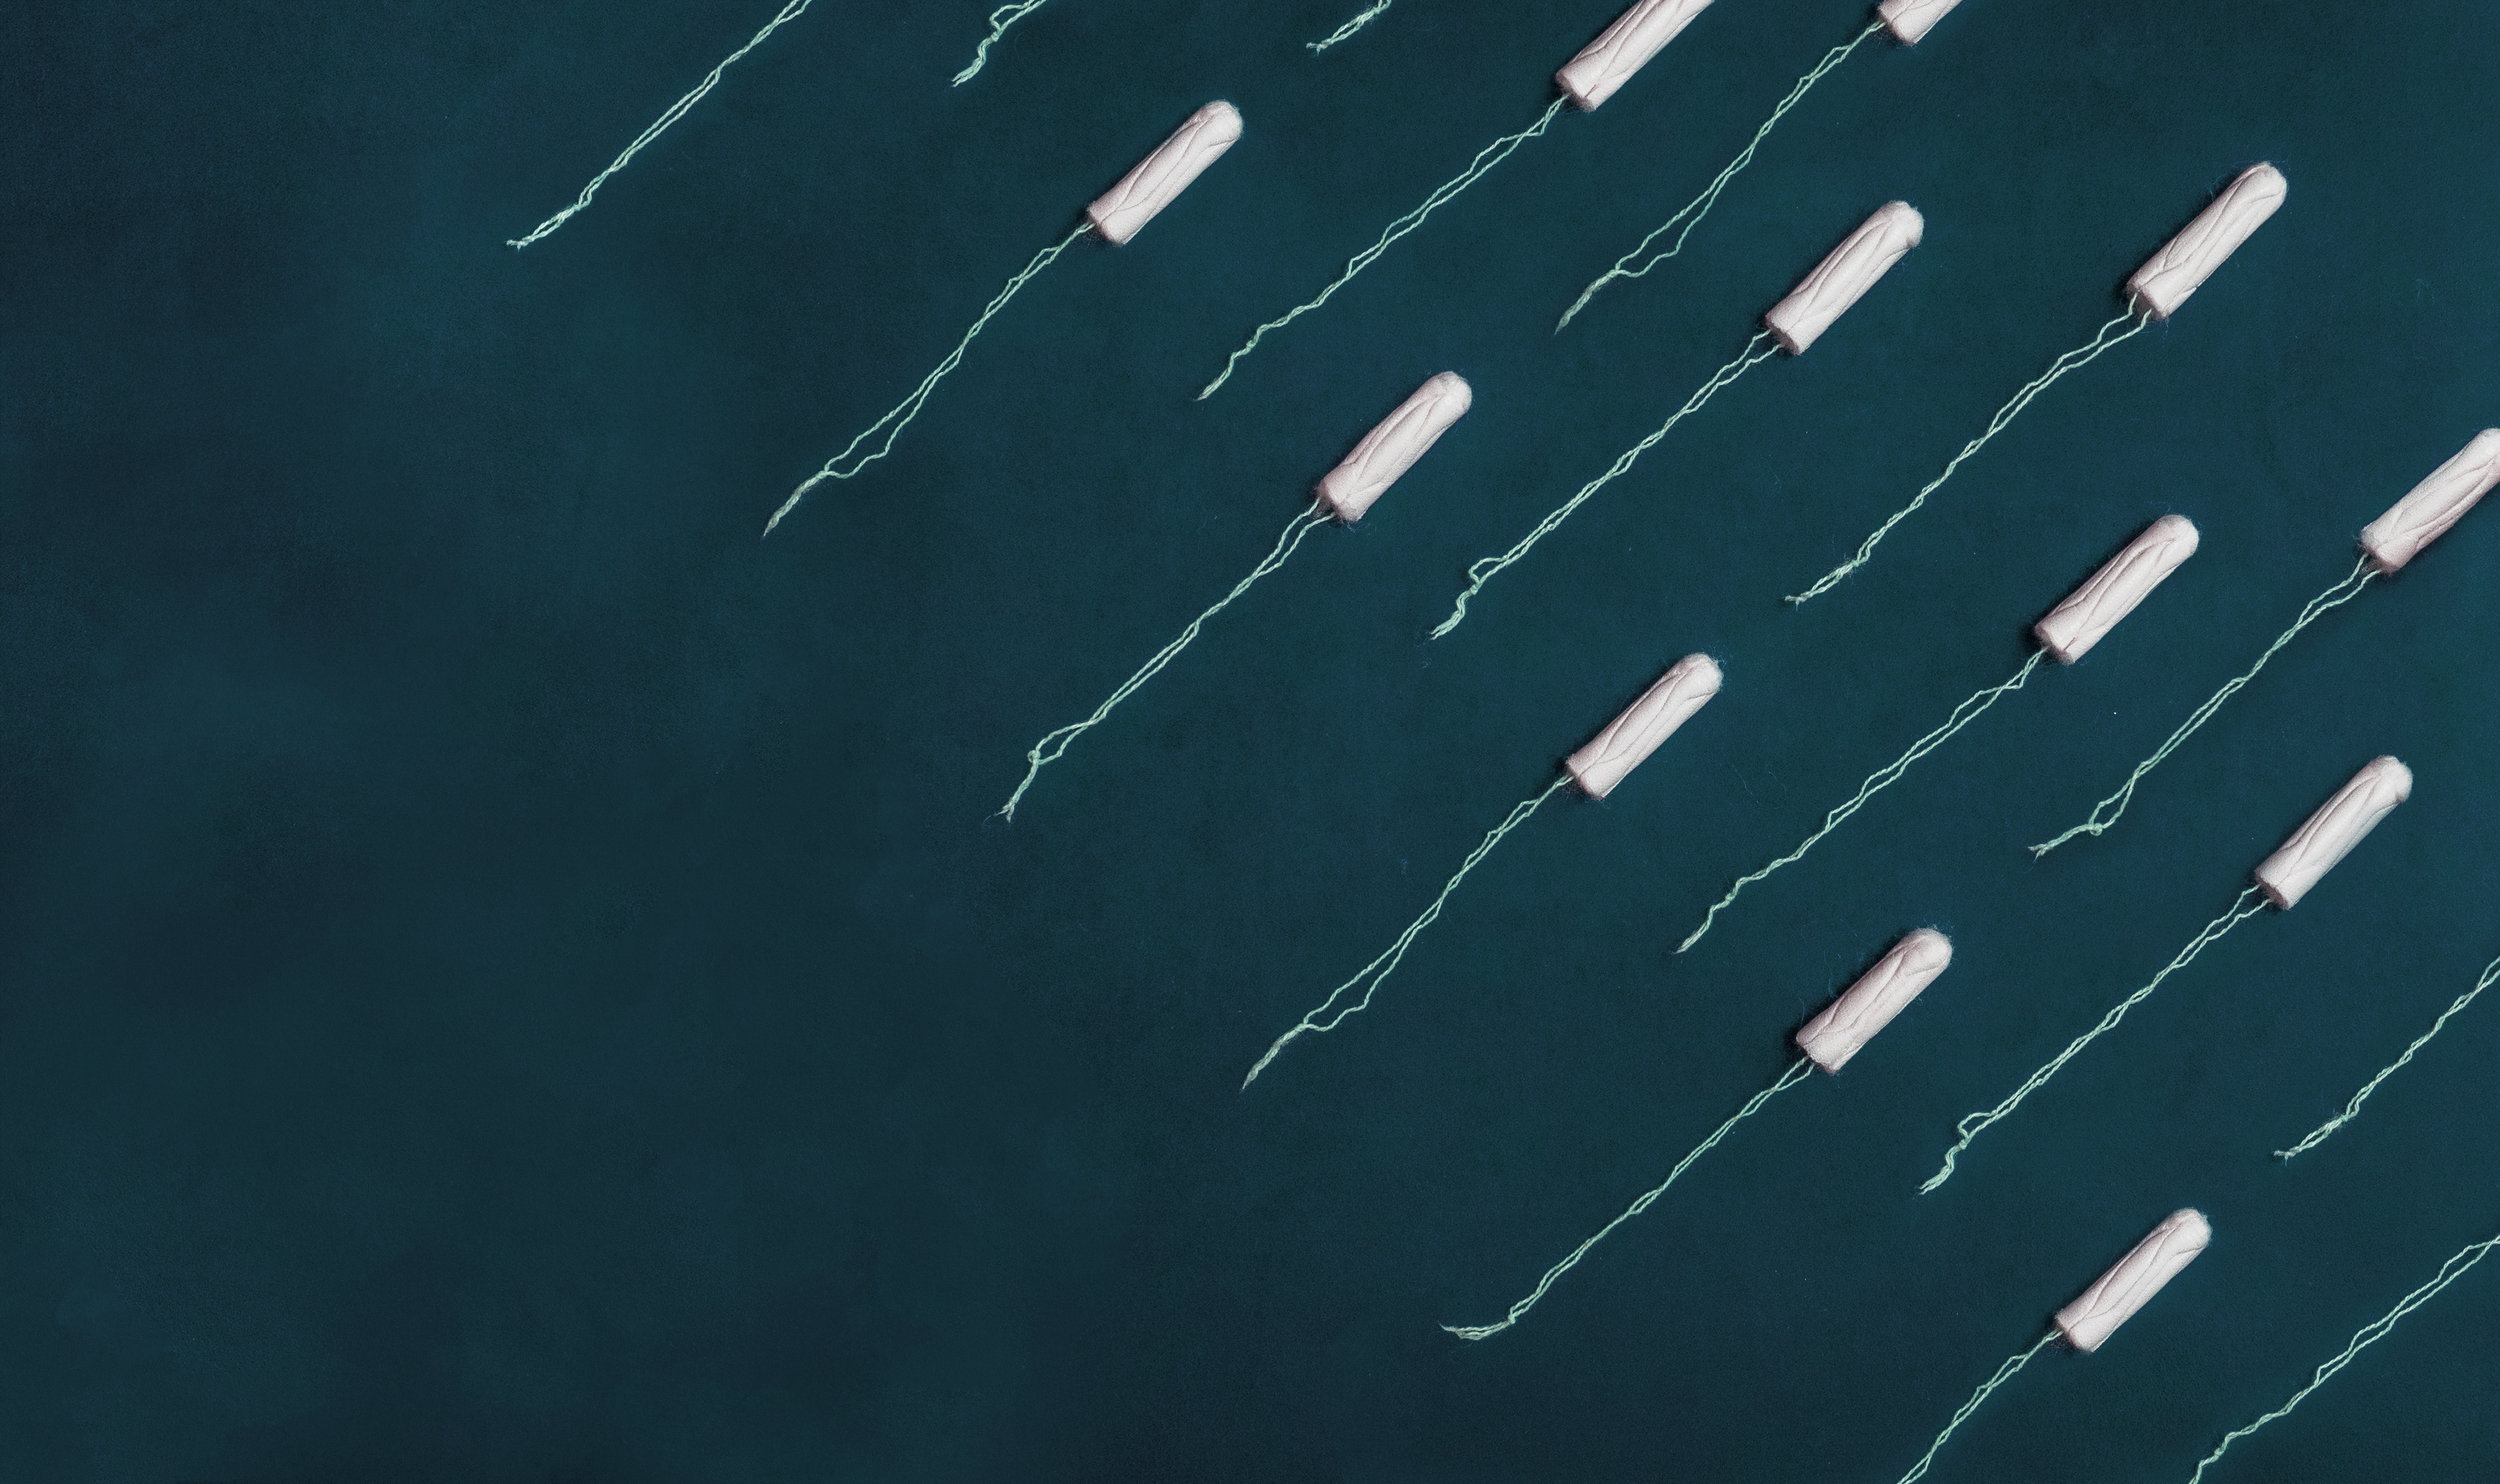 Don't use tampons! Use a menstrual cup instead -